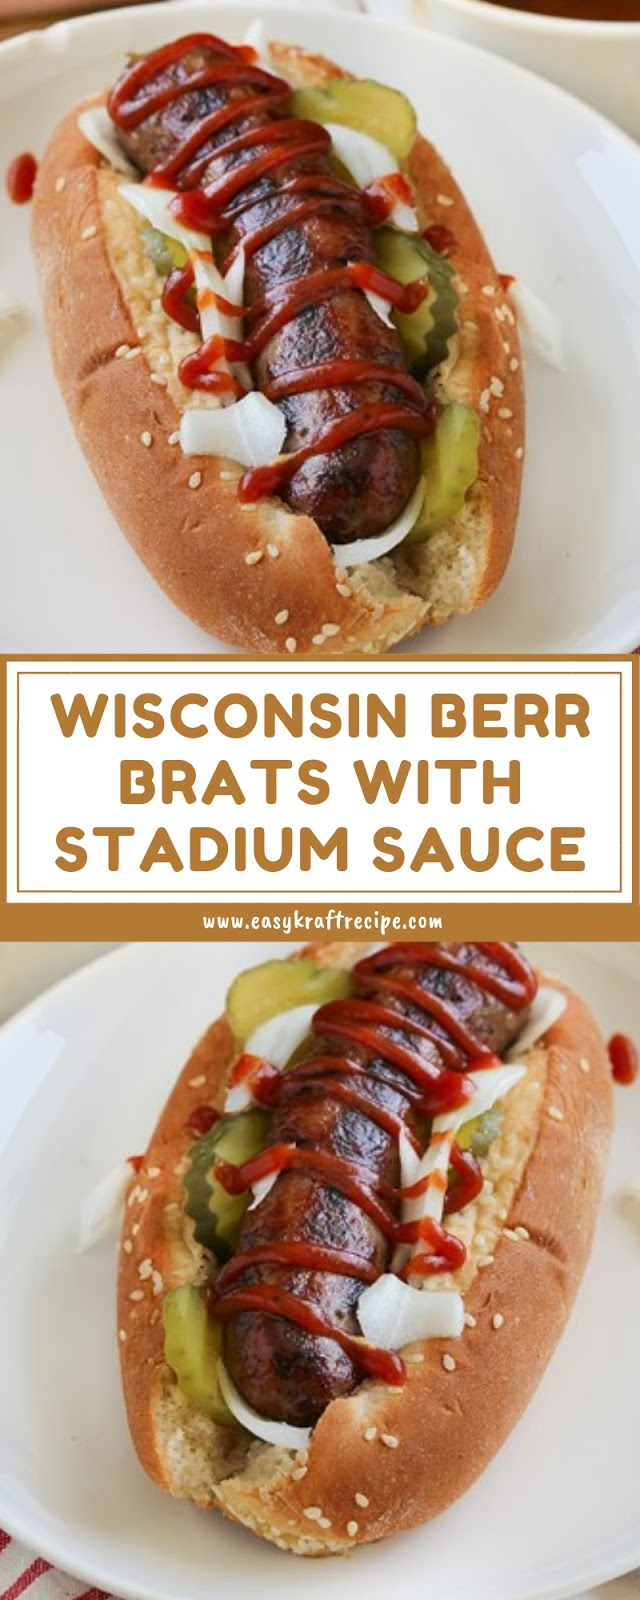 WISCONSIN BERR BRATS WITH STADIUM SAUCE